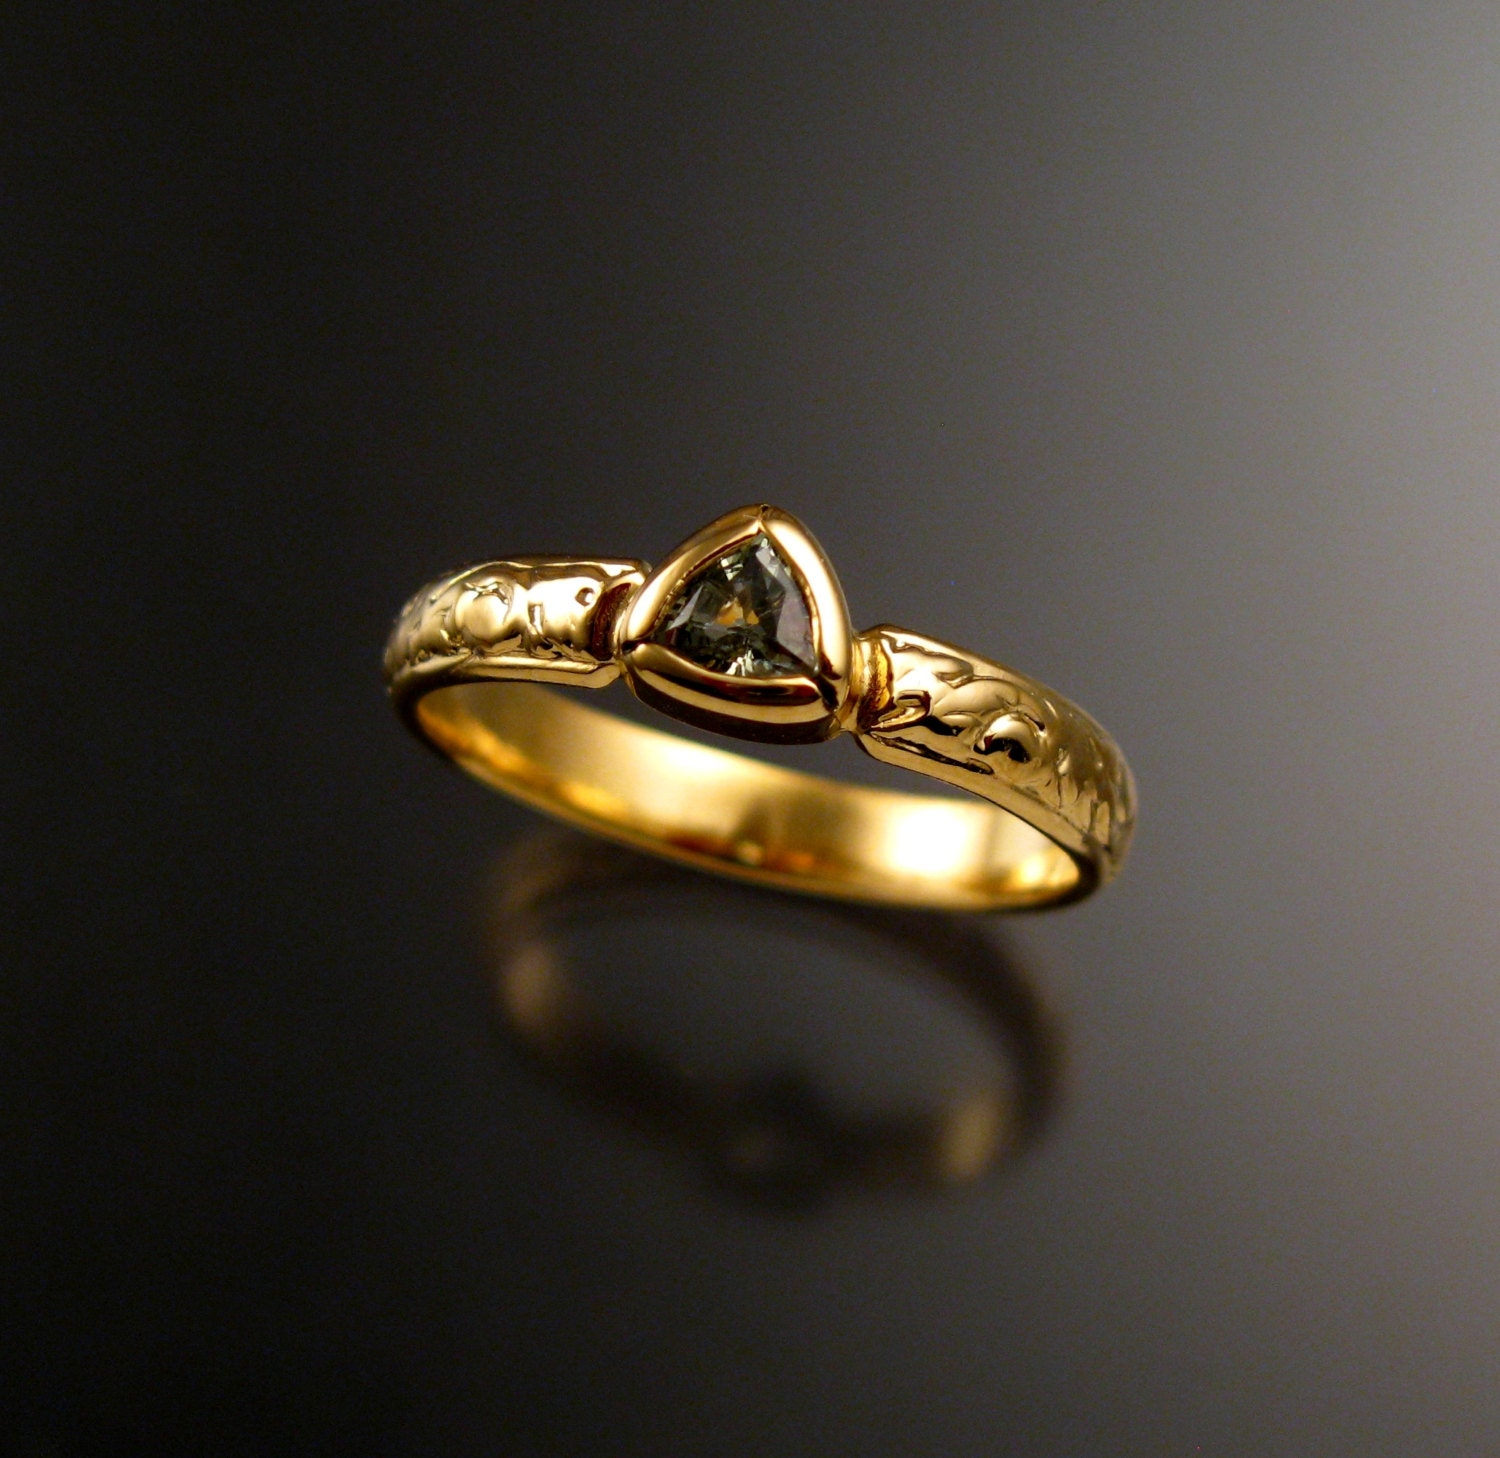 Green Sapphire Triangle Wedding Ring 14k Yellow Gold Victorian Bezel Set Made To Order In Your Size